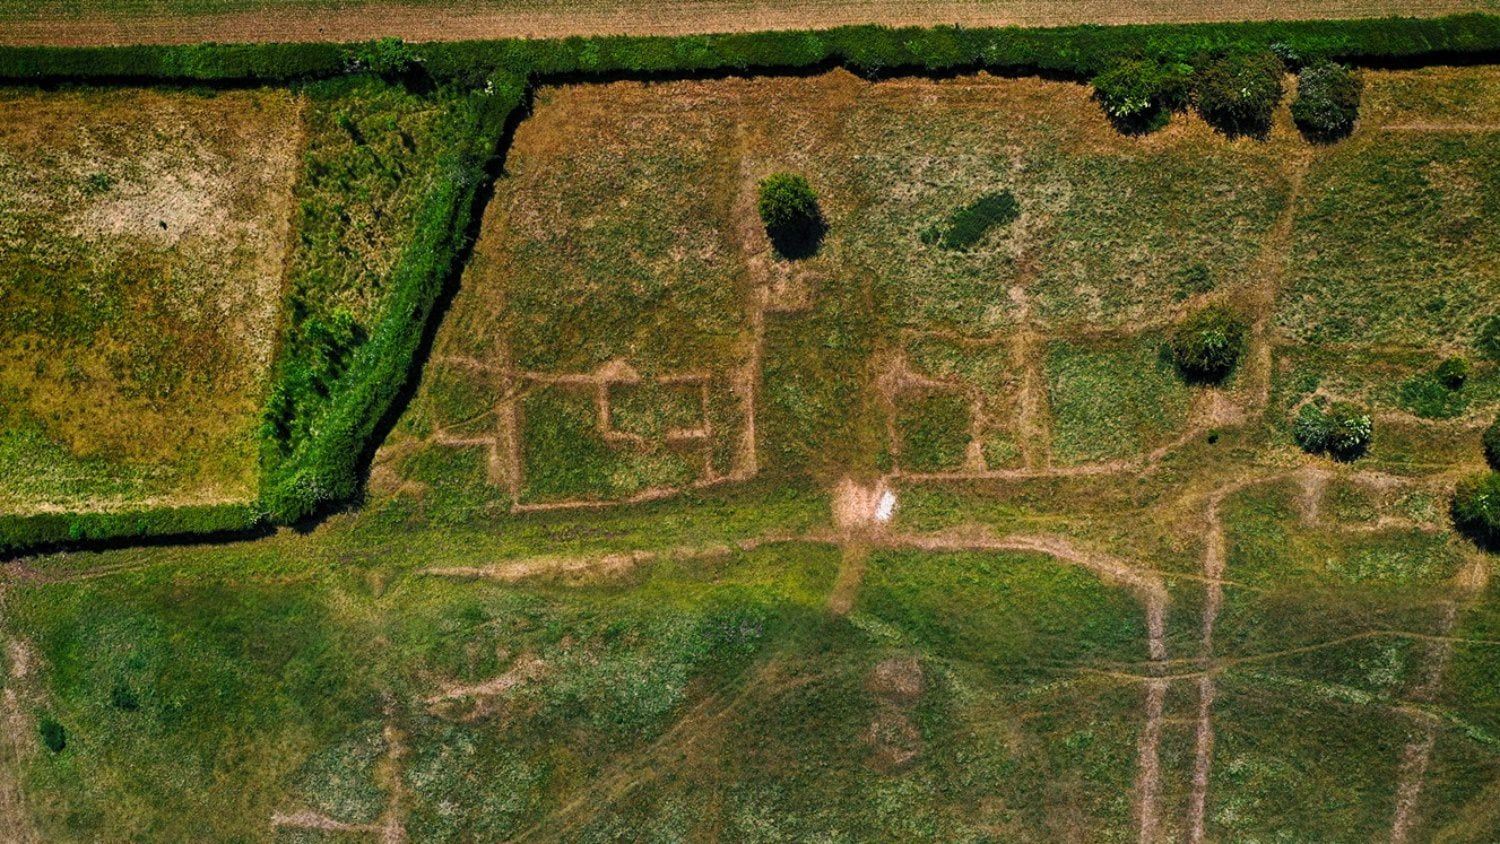 Drone photos show Gainsthorpe Medieval 'lost' village